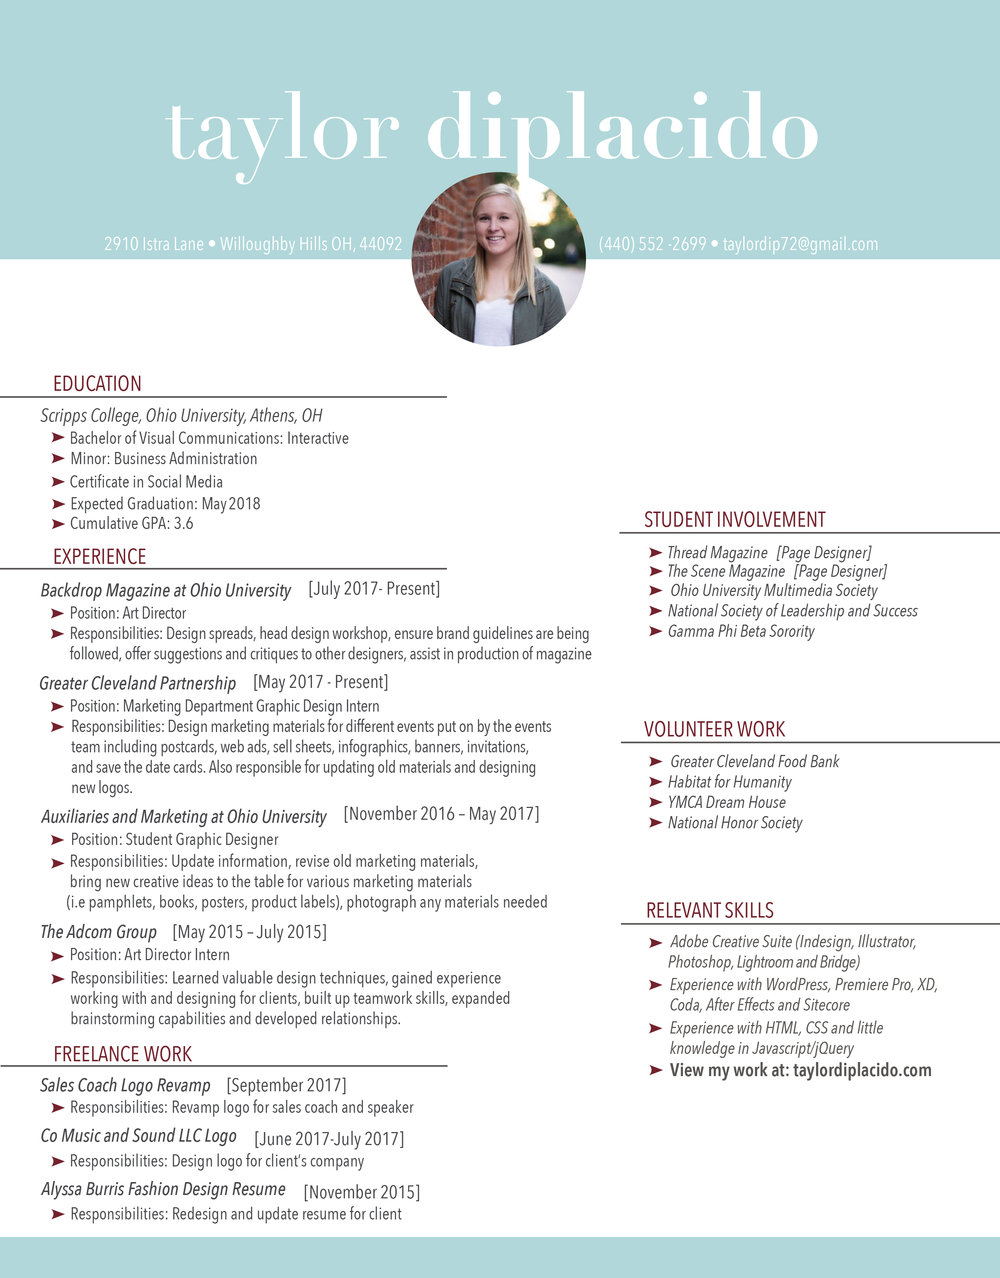 Here is my resume. - Click the button below for a bigger version of my resume.